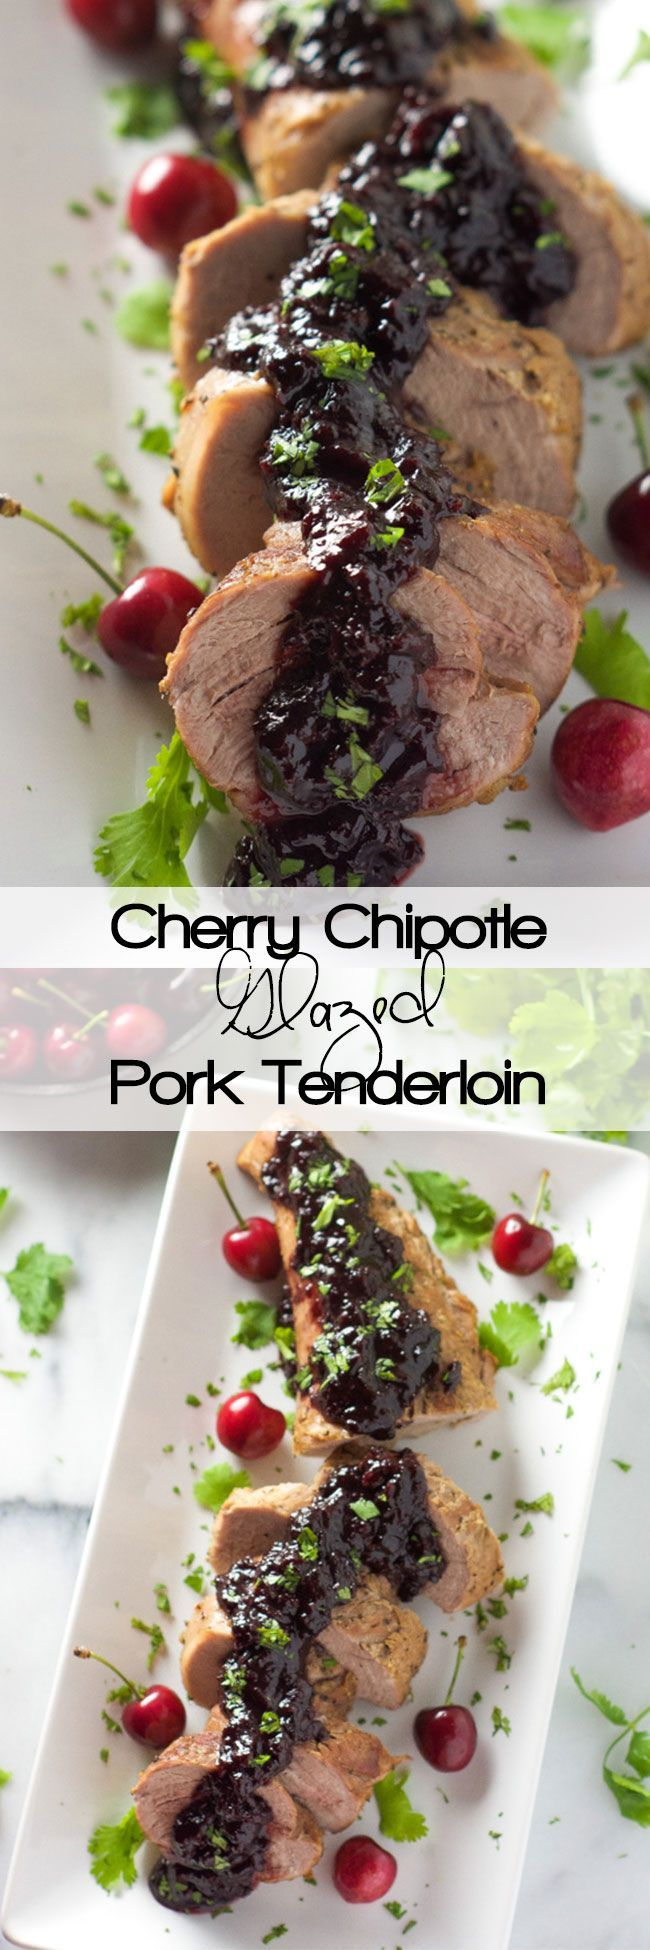 Chipotle Pork Tenderloin, Gluten Free, Roast, Recipe, Sweets, Dinner, Sauces, Spices, Families, Simple, Low Carb, Fruit